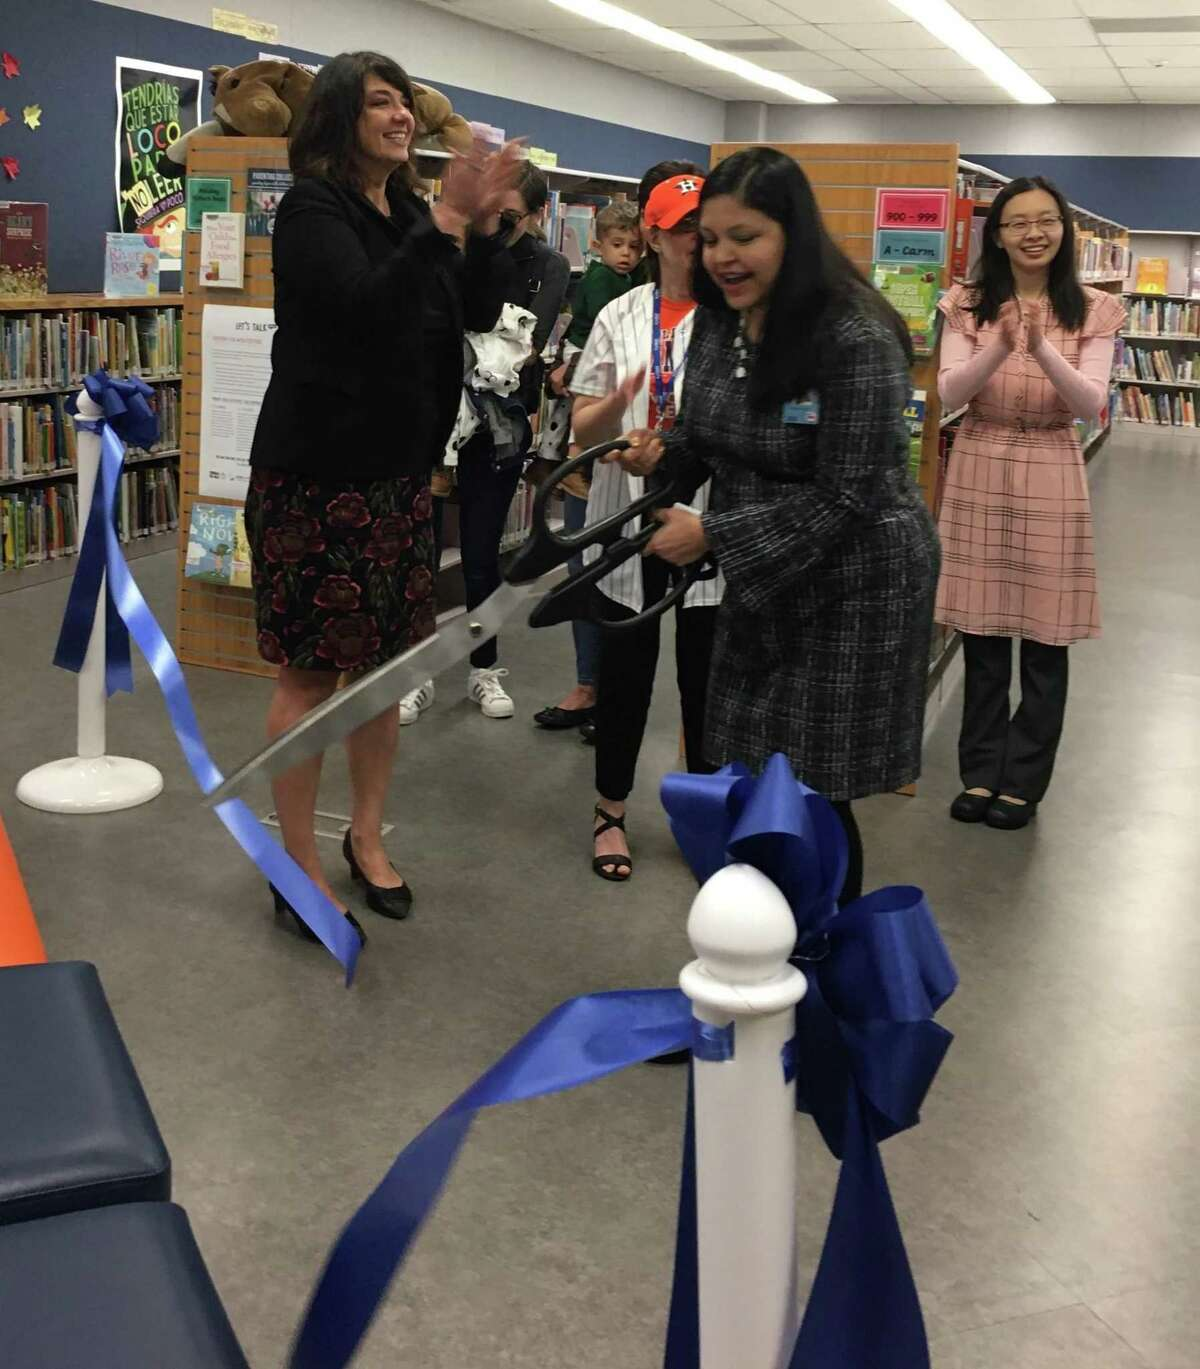 Akhila Bhat, branch manager of Maud Marks Branch Library, cuts the ribbon Oct. 31 of the library's George and Barbara Bush Family Place, one of eight in the Harris County Public Library system. Bhat spoke about family place prior to the ribbon cutting as did Jennifer Schwartz, left, program services manager for the Harris County Public Library.